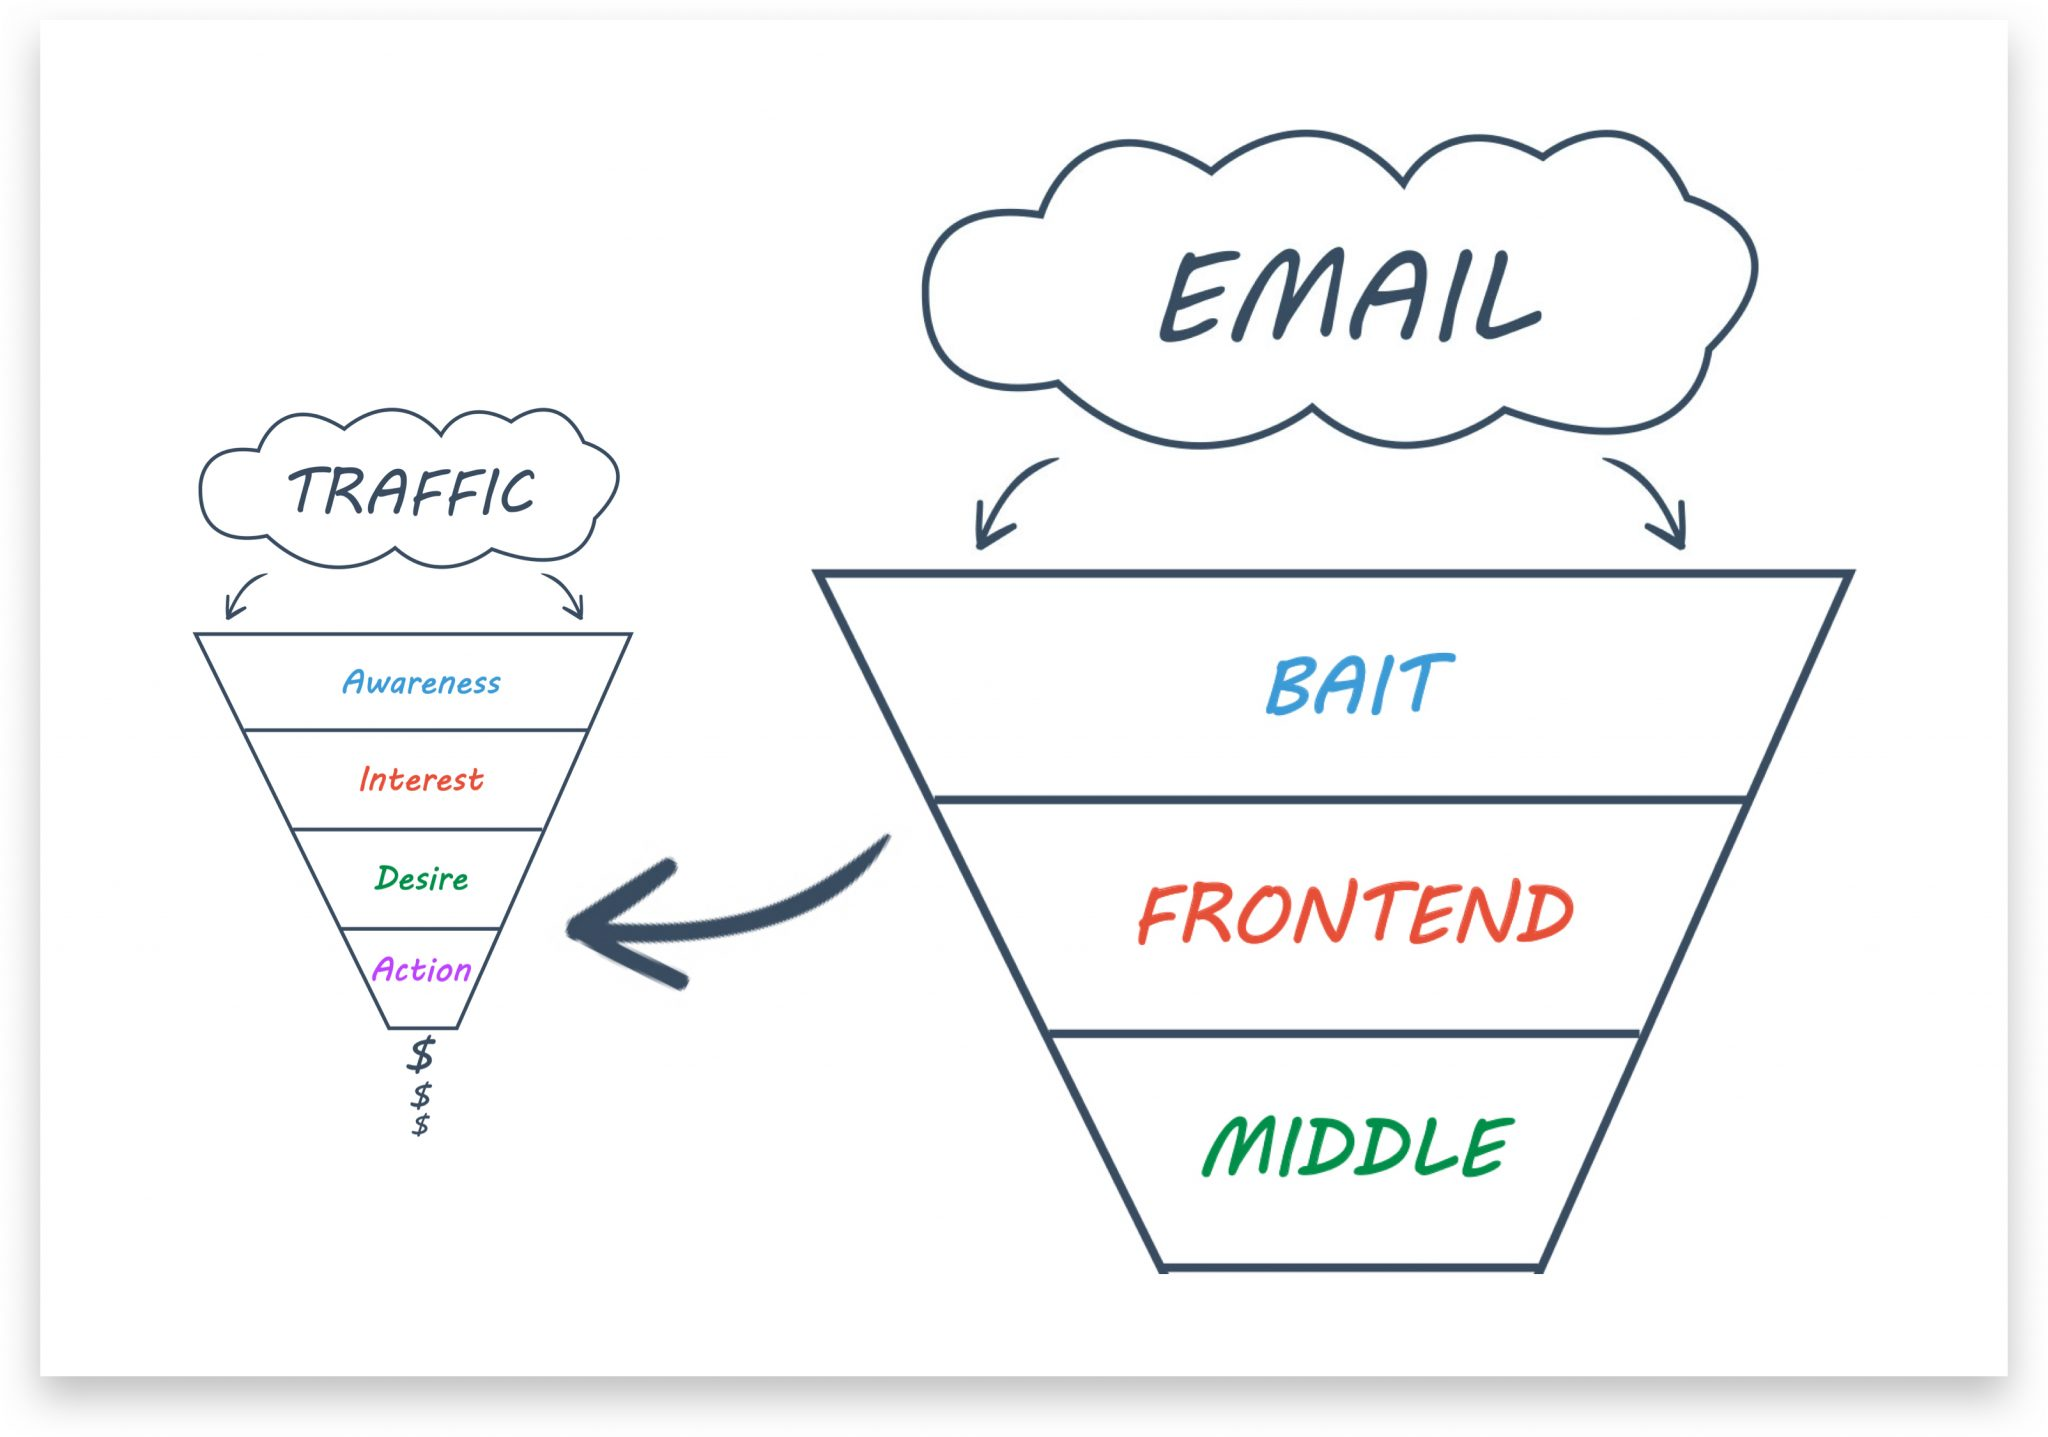 Email Marketing Funnels: How to Start Your Own Email Marketing Funnel